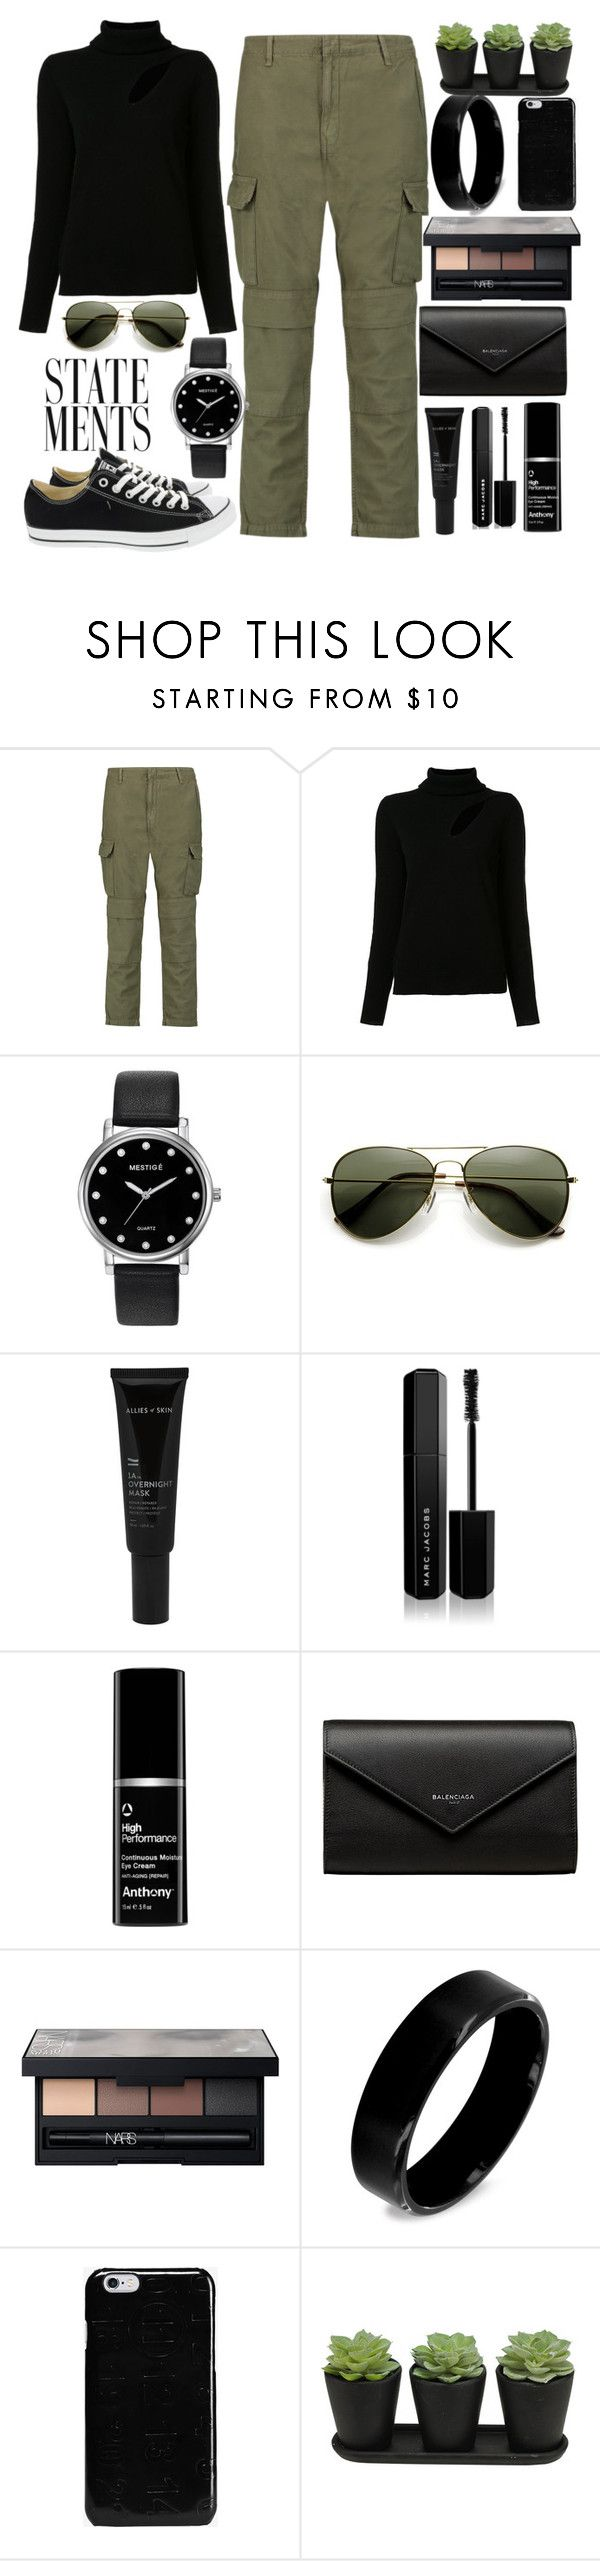 """""""Casuality"""" by creativejenerator ❤ liked on Polyvore featuring rag & bone, A.L.C., Mestige, Allies of Skin, Marc Jacobs, Balenciaga, NARS Cosmetics, West Coast Jewelry, Maison Margiela and Converse"""